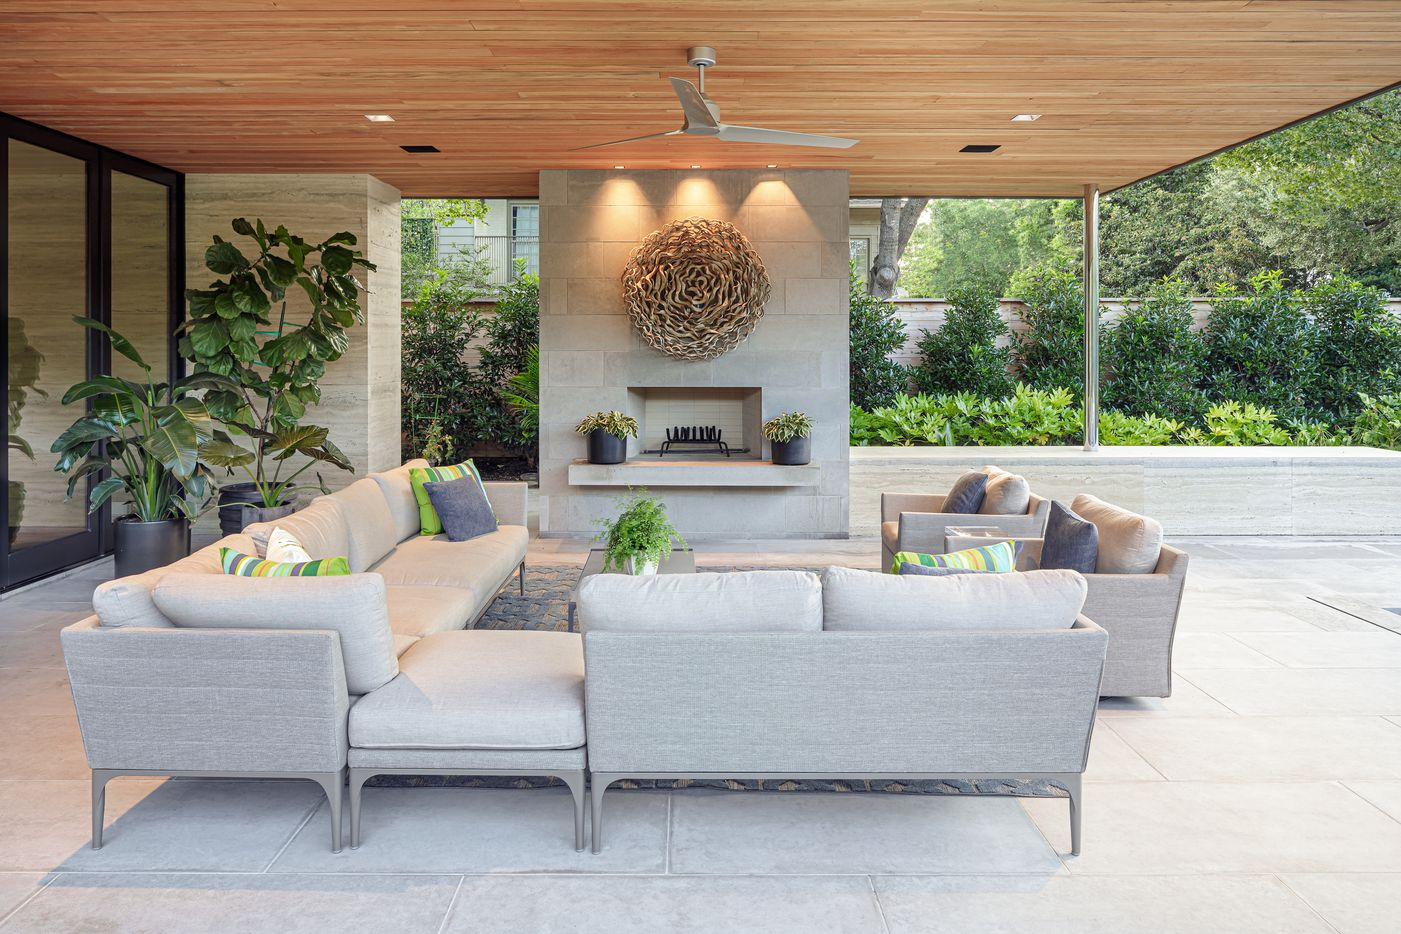 A patio at 4020 Glenwick Lane.